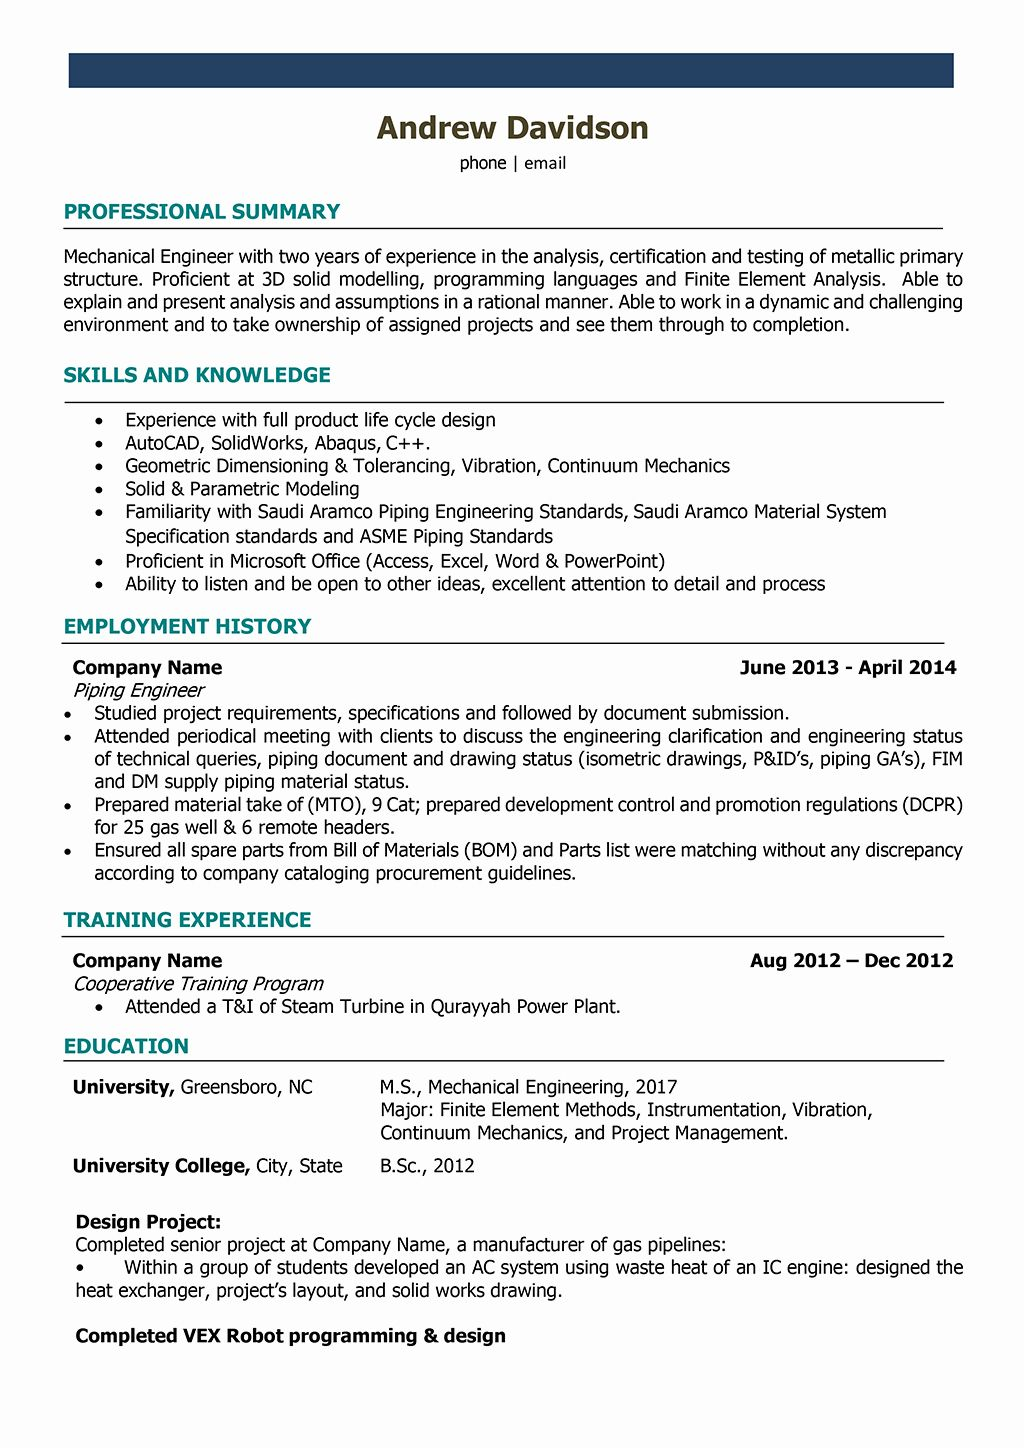 25 Mechanical Engineering Resume Templates in 2020 (With